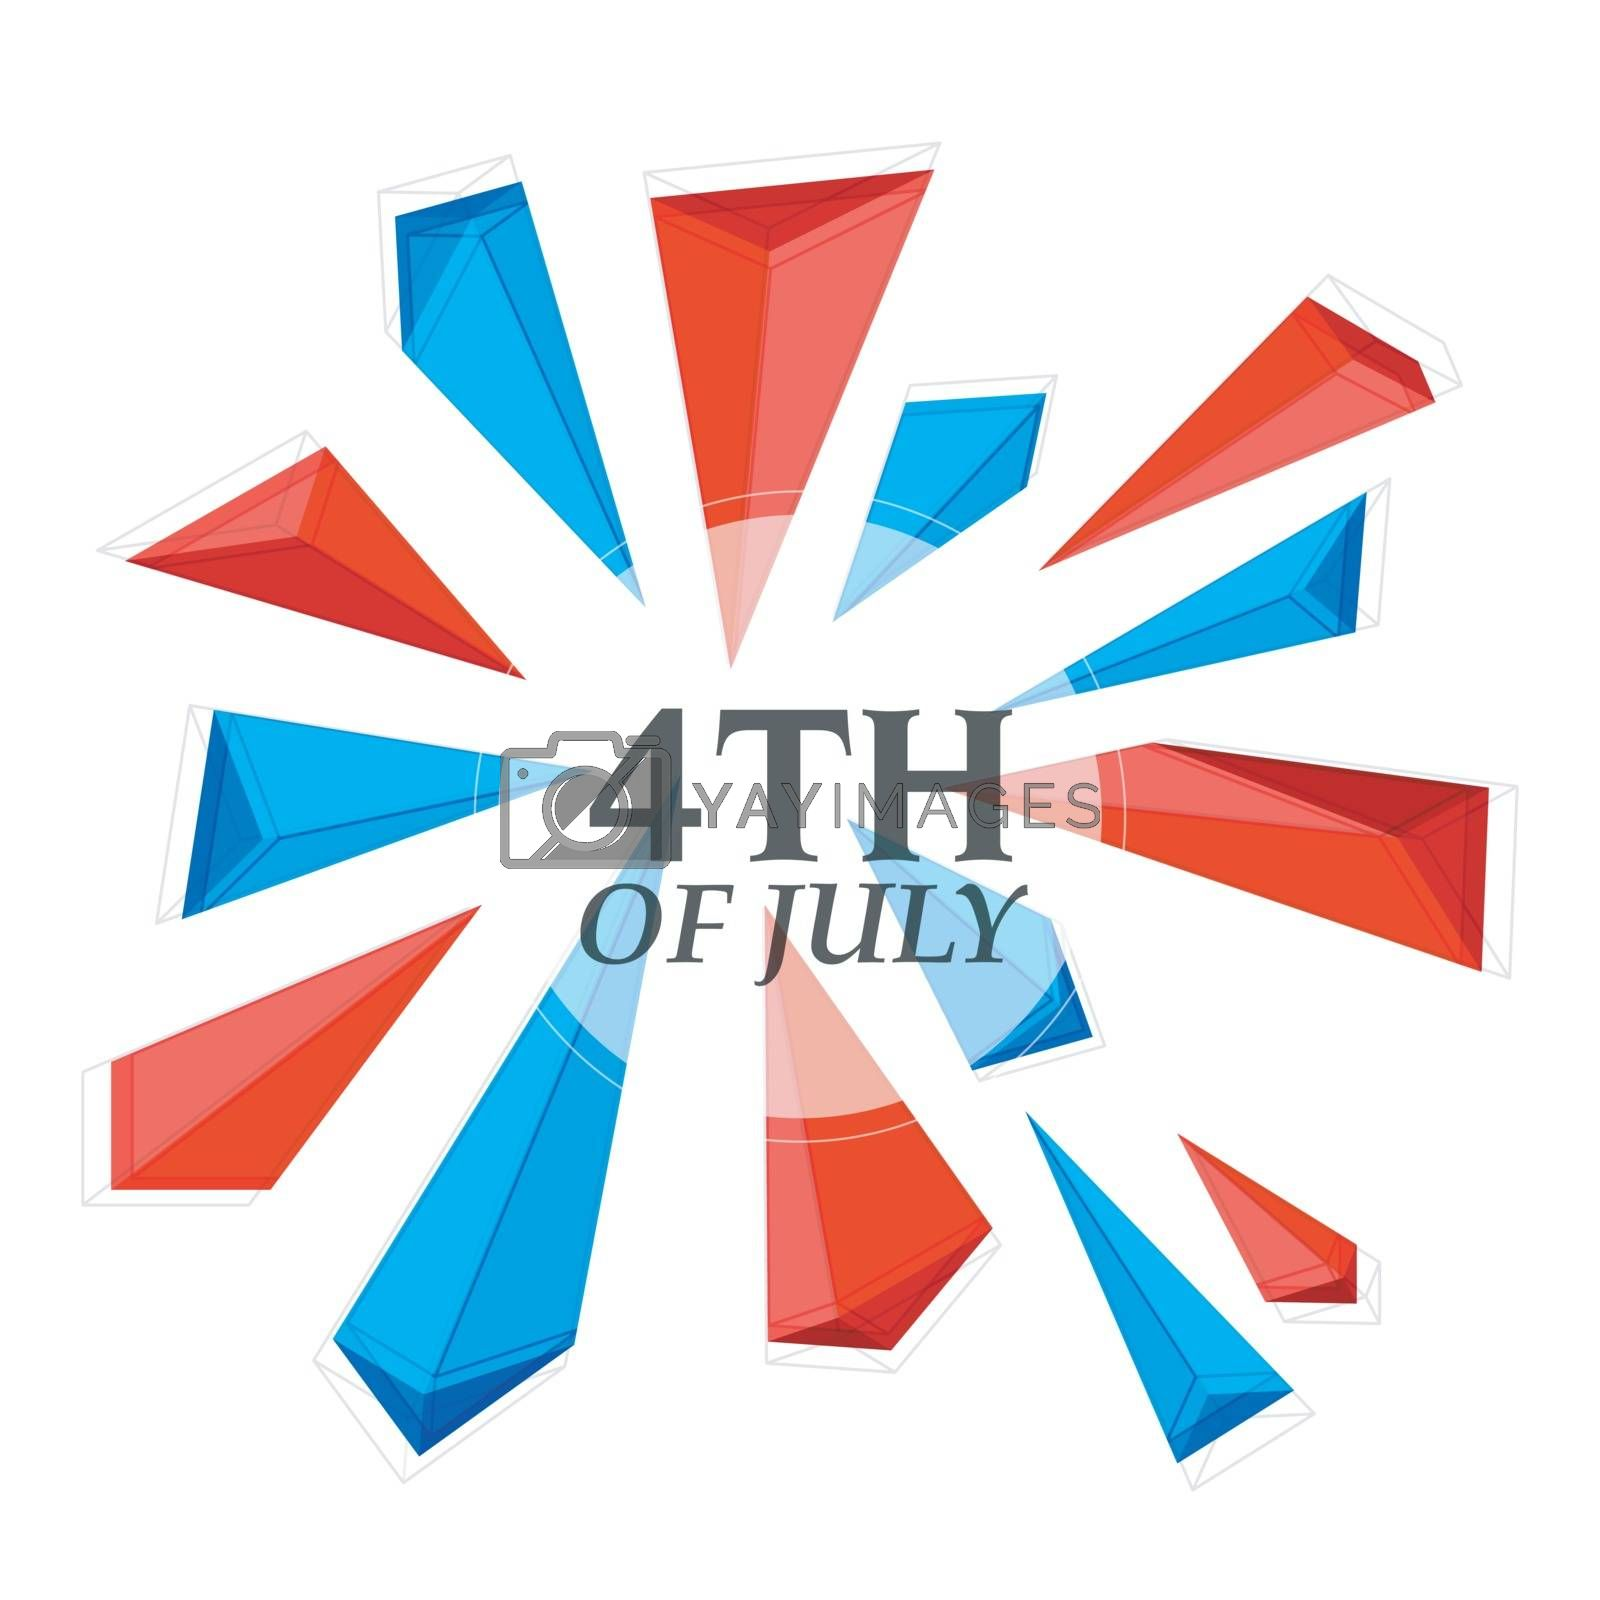 4th of July, Independence Day celebration background with abstract low poly or polygonal shapes in American Flag colors.